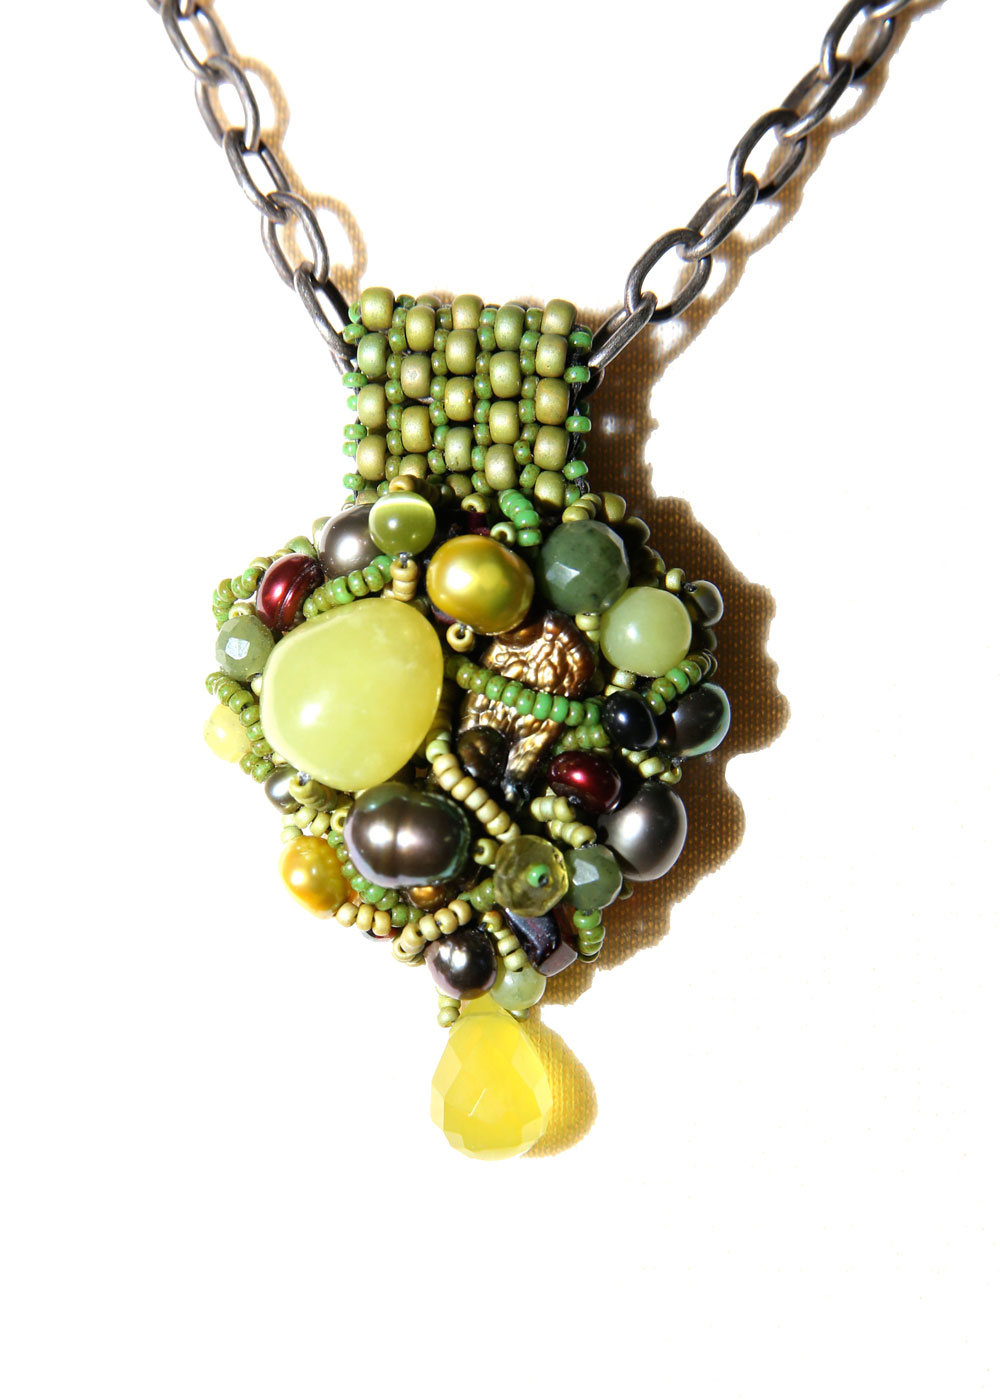 23_Encrusted-Pendant---Green-and-Red_rgb_opt_web.jpg